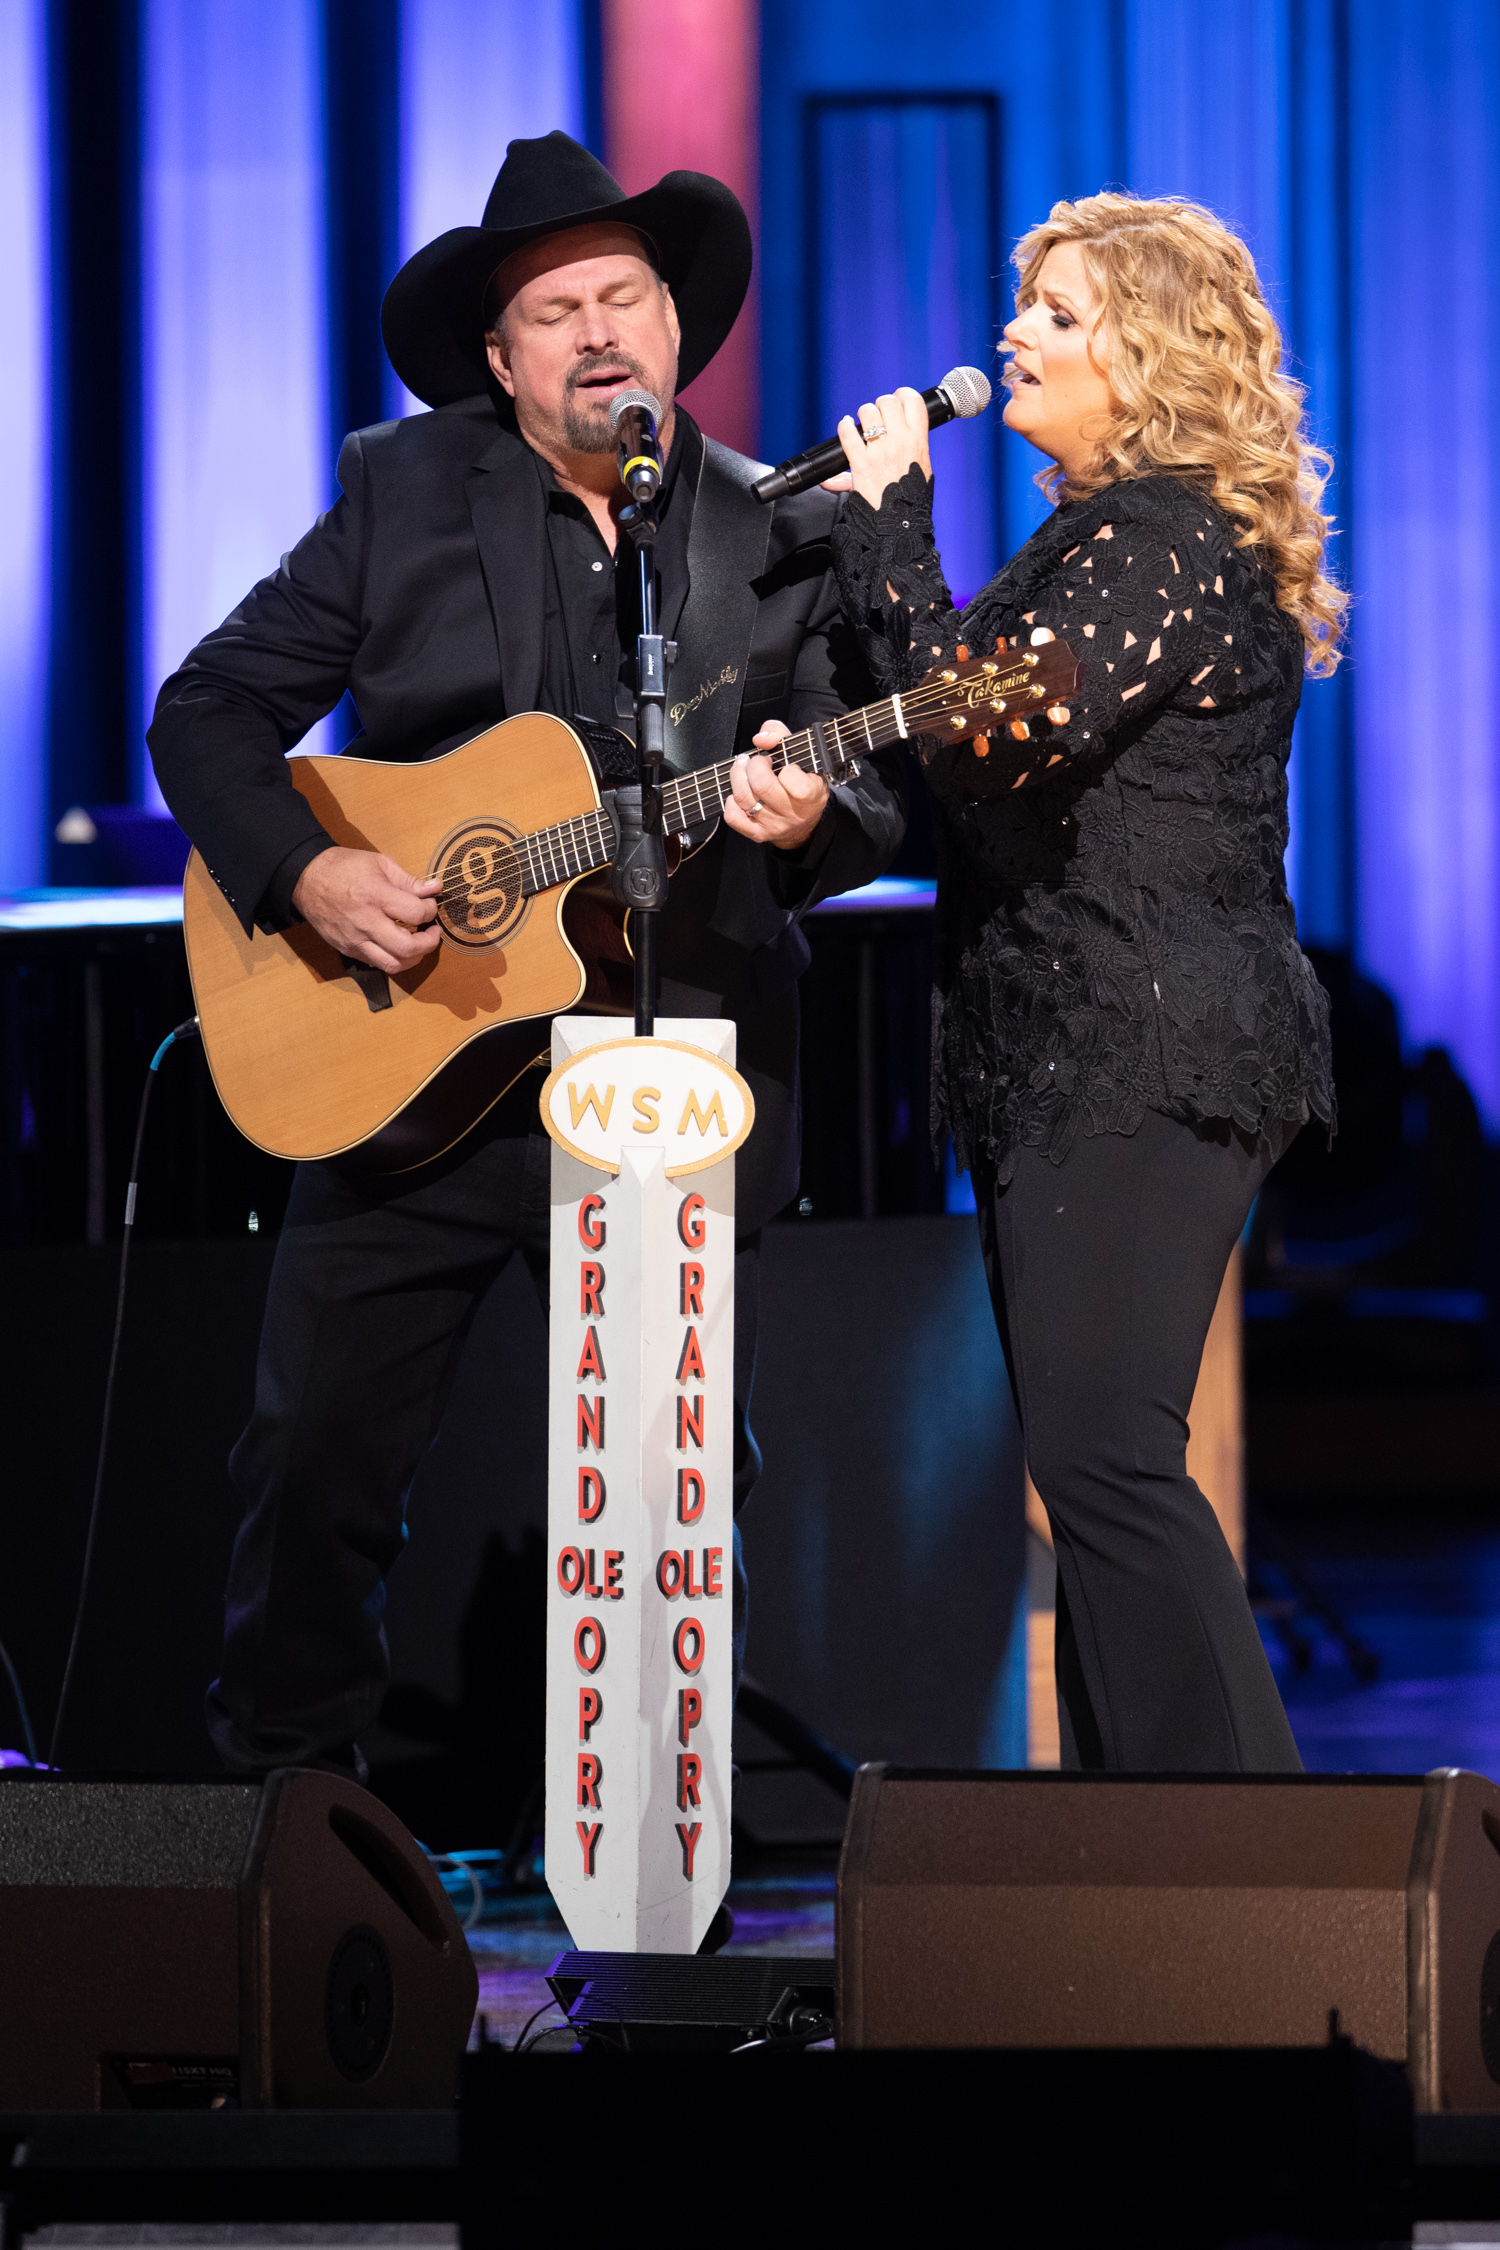 """Garth Brooks joins Trisha Yearwood onstage for her 20th Anniversary celebration to perform """"Whiskey to Wine."""""""